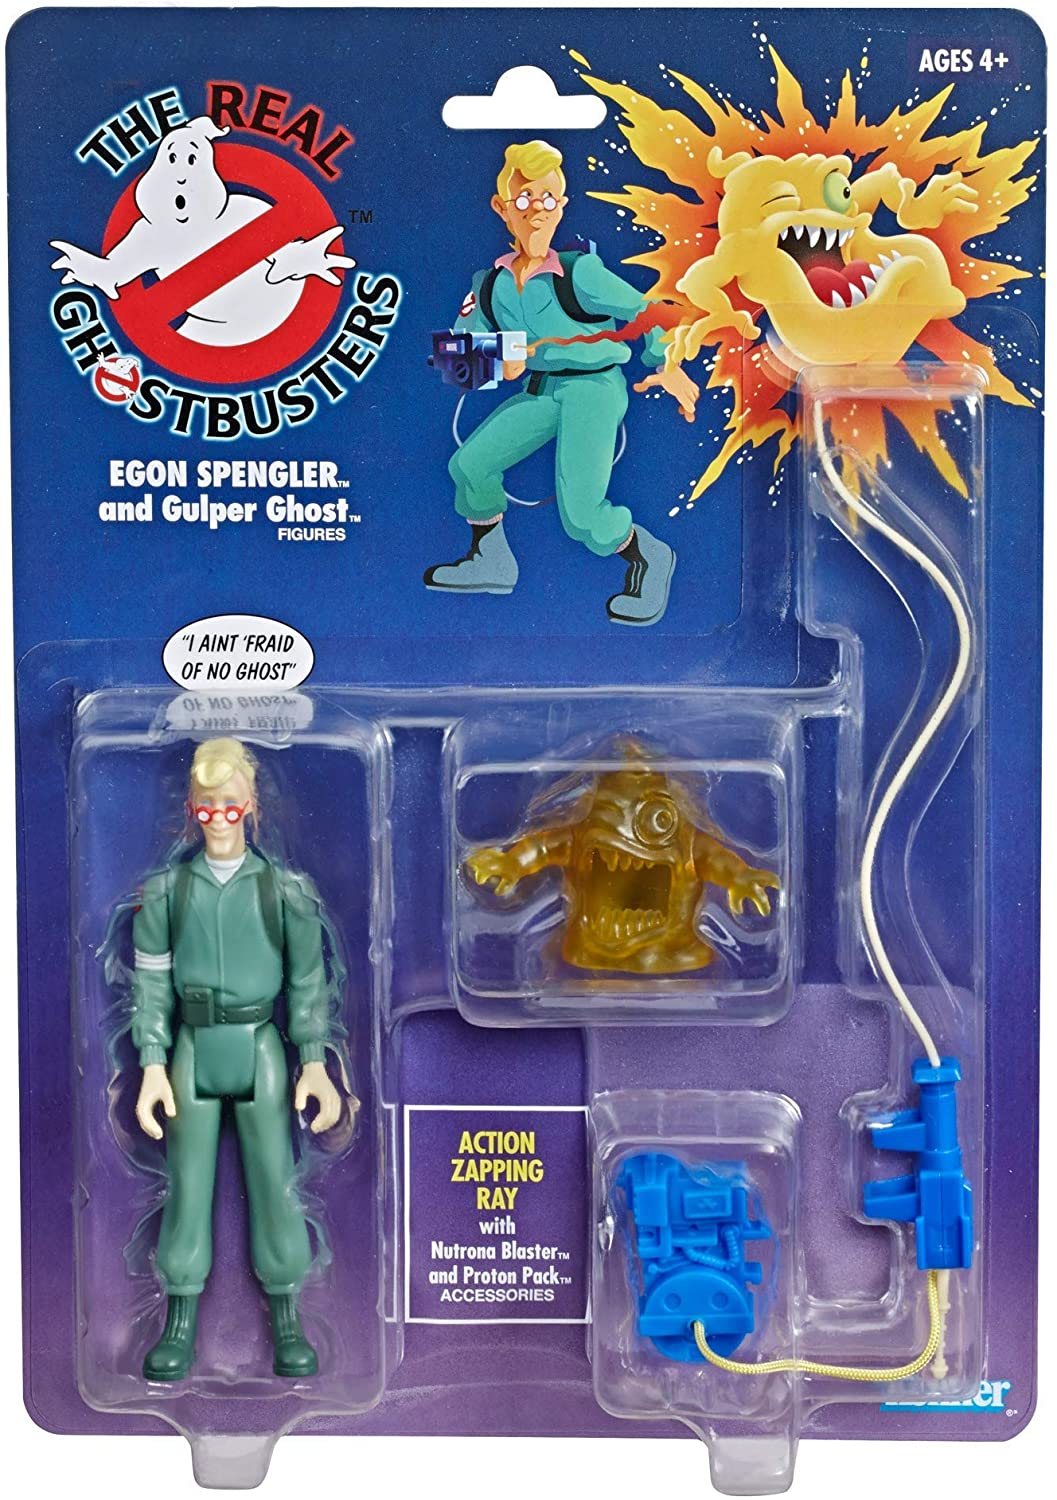 The Real Ghostbusters Kenner Classics Retro Figure - Egon Spengler and Gulper Ghost - Walmart Exclusive